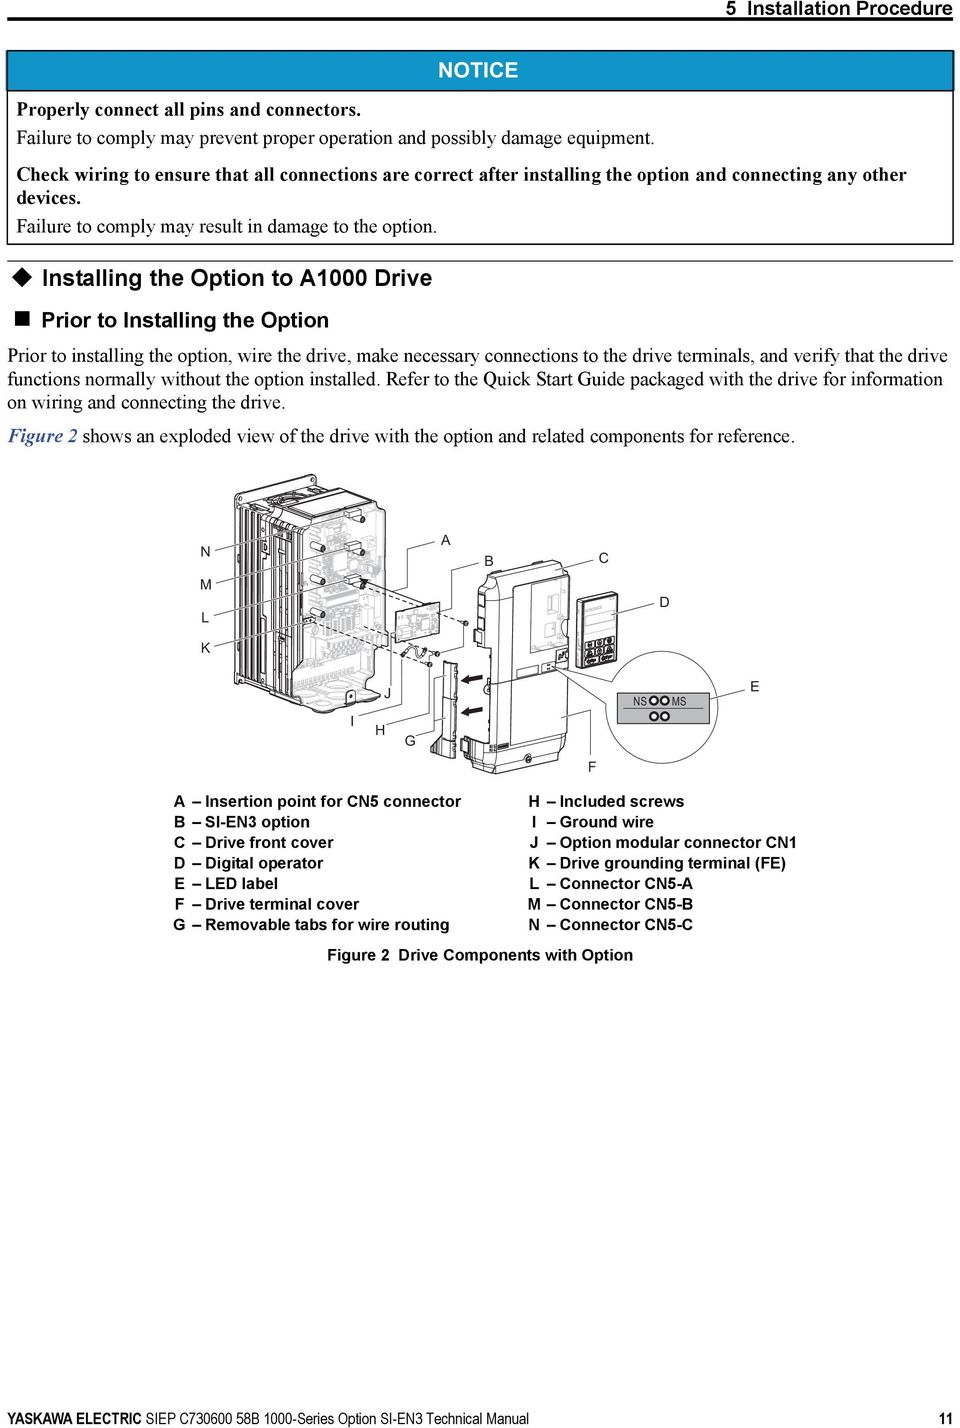 Awe Inspiring Yaskawa Ac Drive 1000 Series Option Ethernet Ip Technical Manual Pdf Wiring Digital Resources Zidurslowmaporg